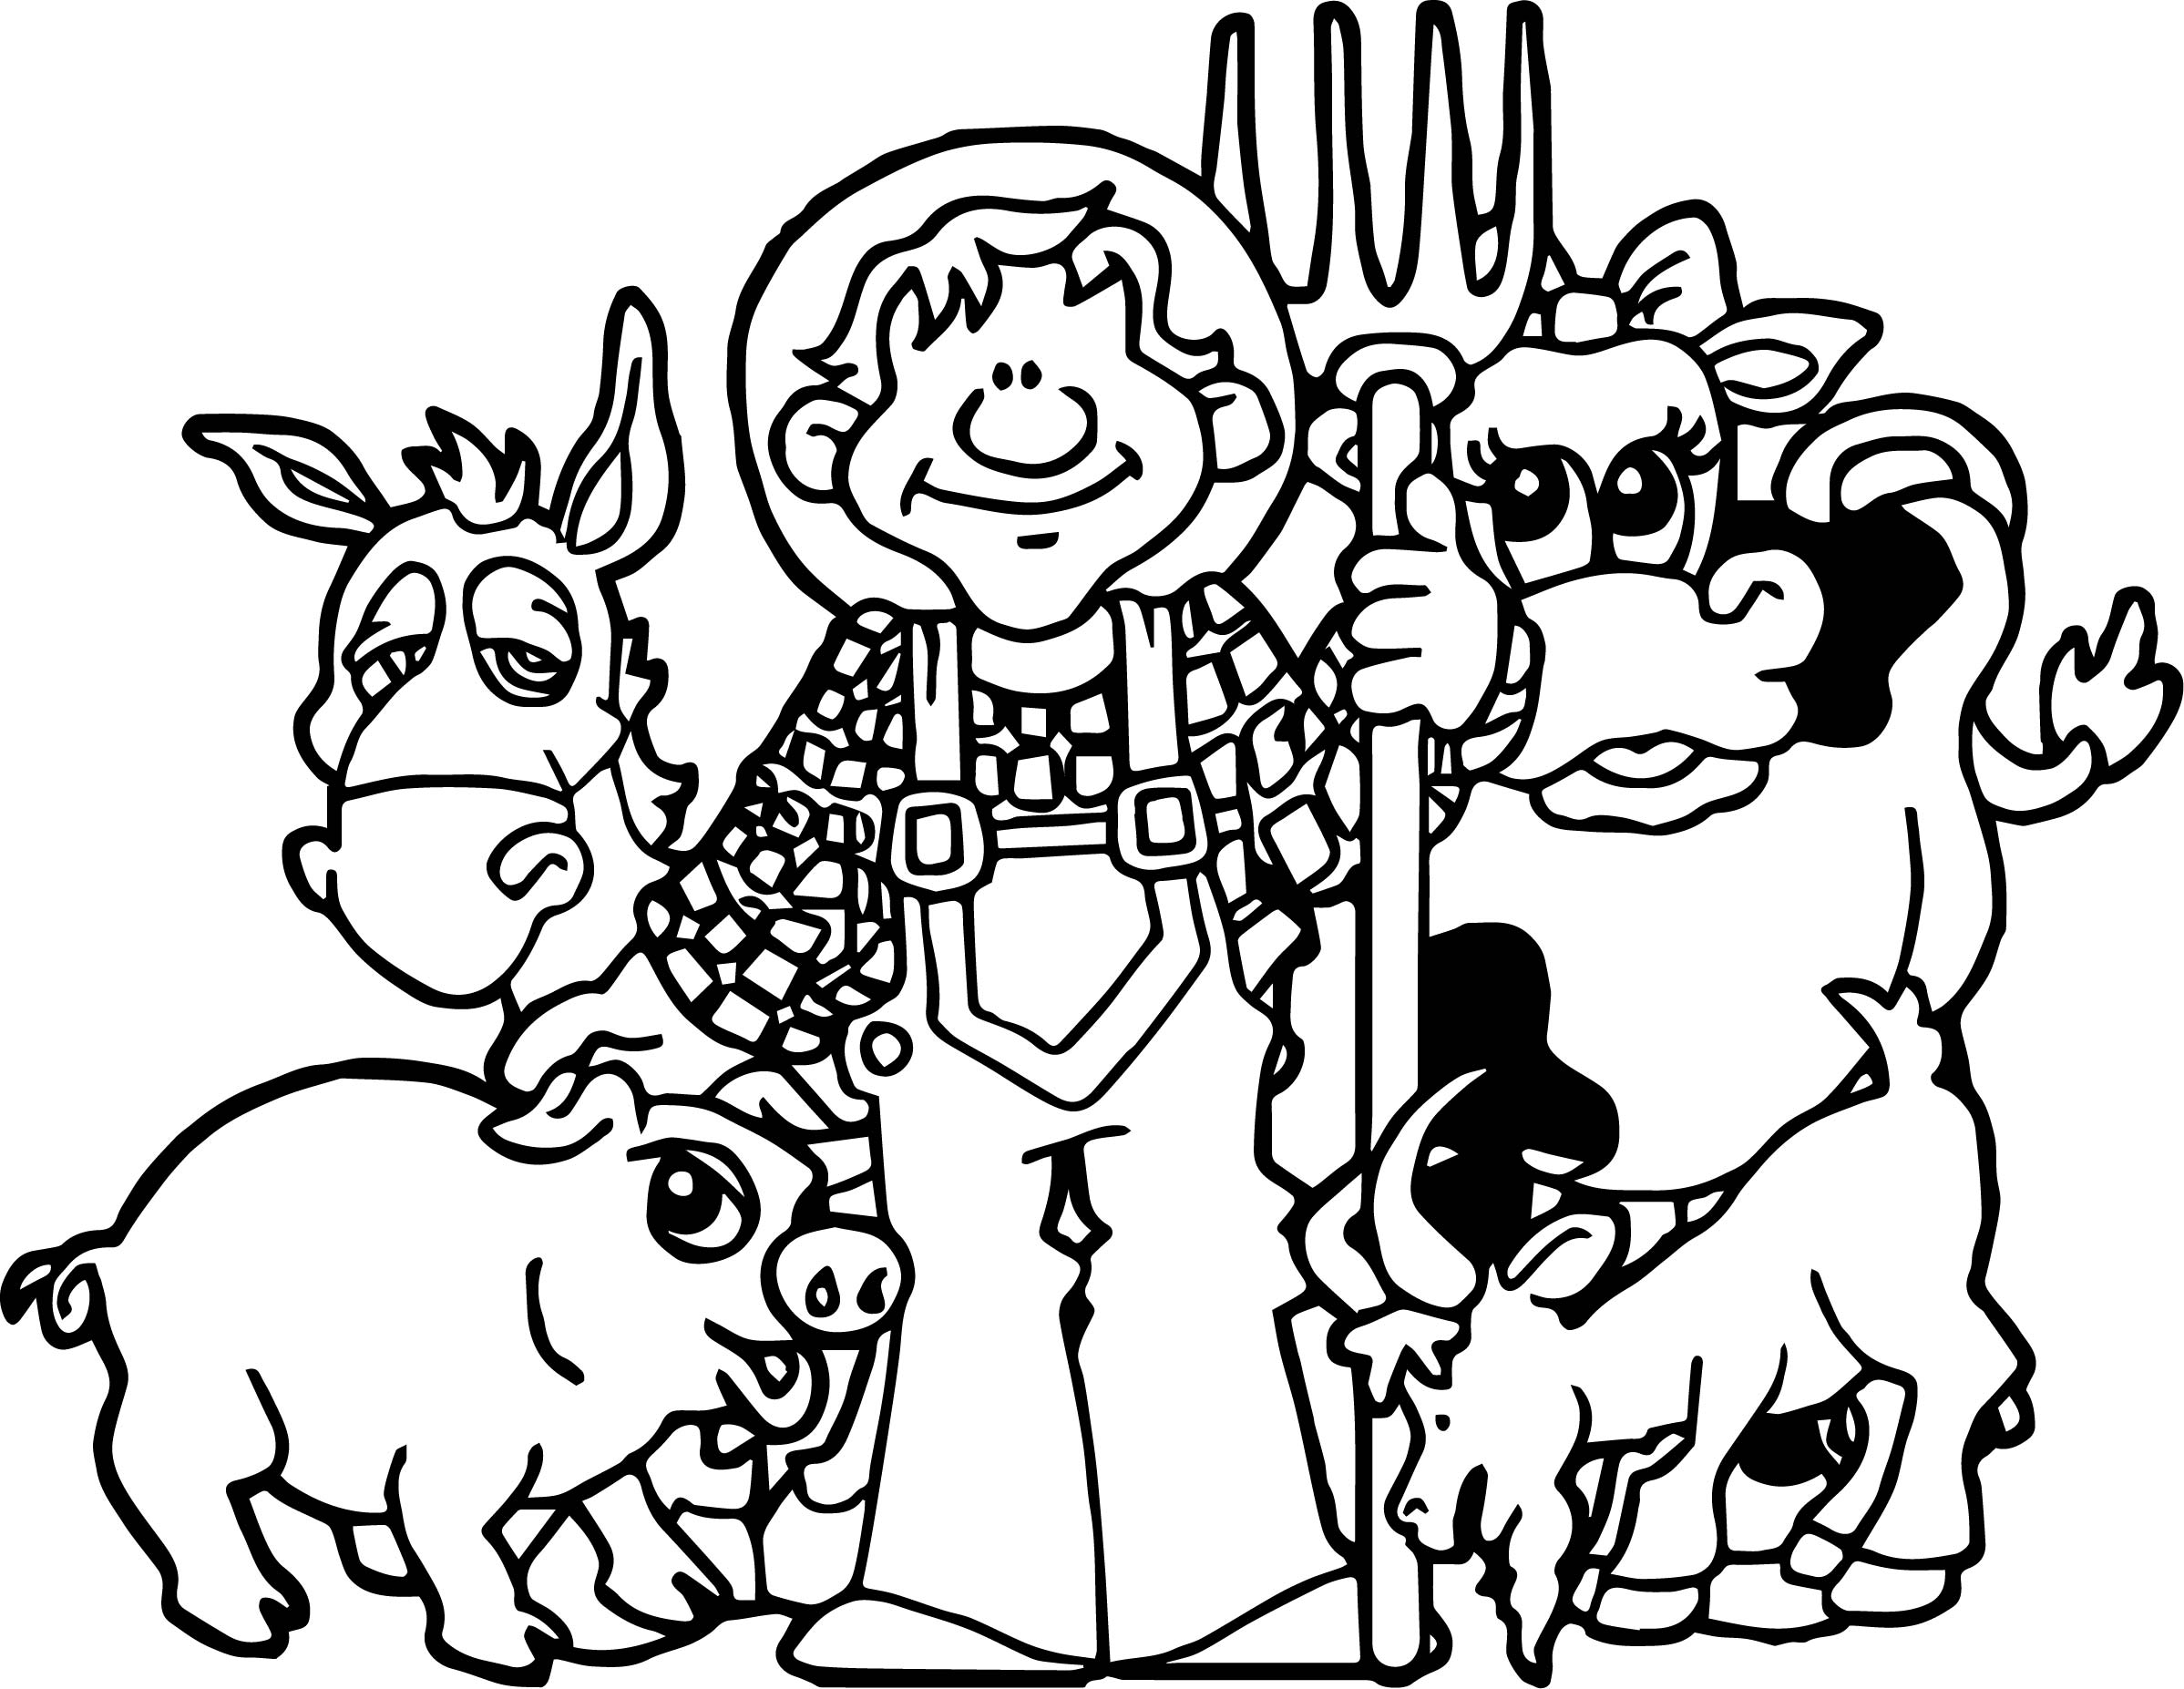 coloring pages of farm animals - sylvainian families free colouring pages